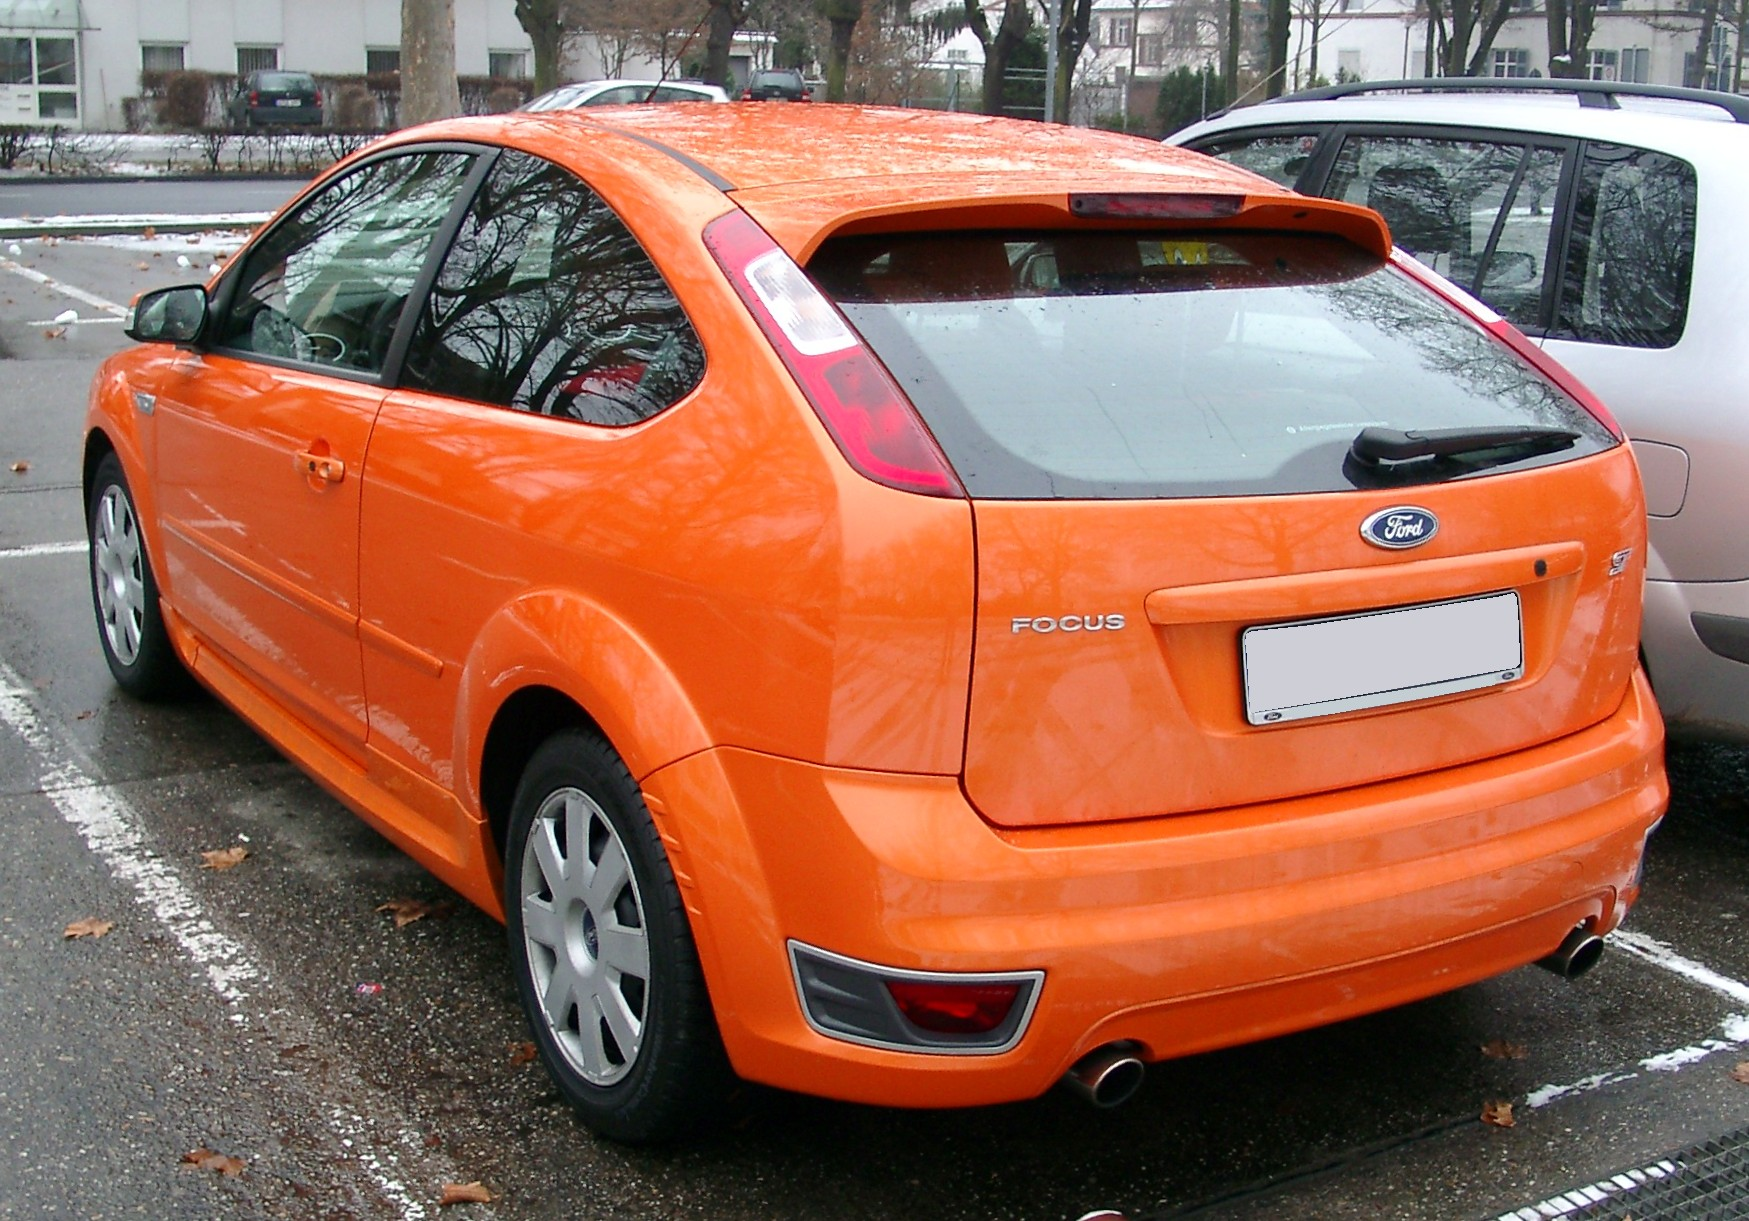 File:Ford Focus ST rear 20071227.jpg - Wikimedia Commons